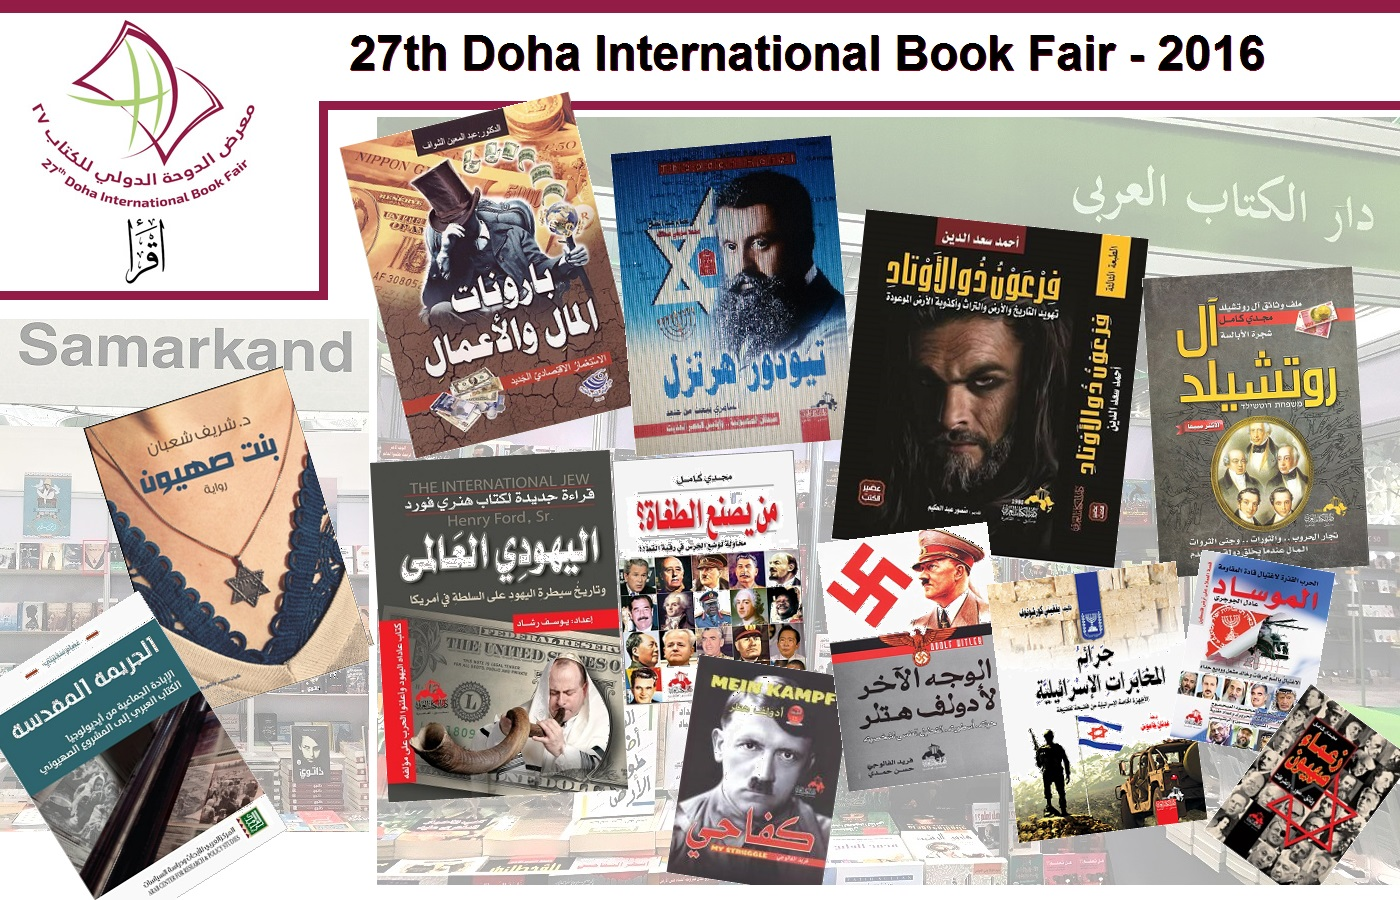 Doha bookfair 2016j